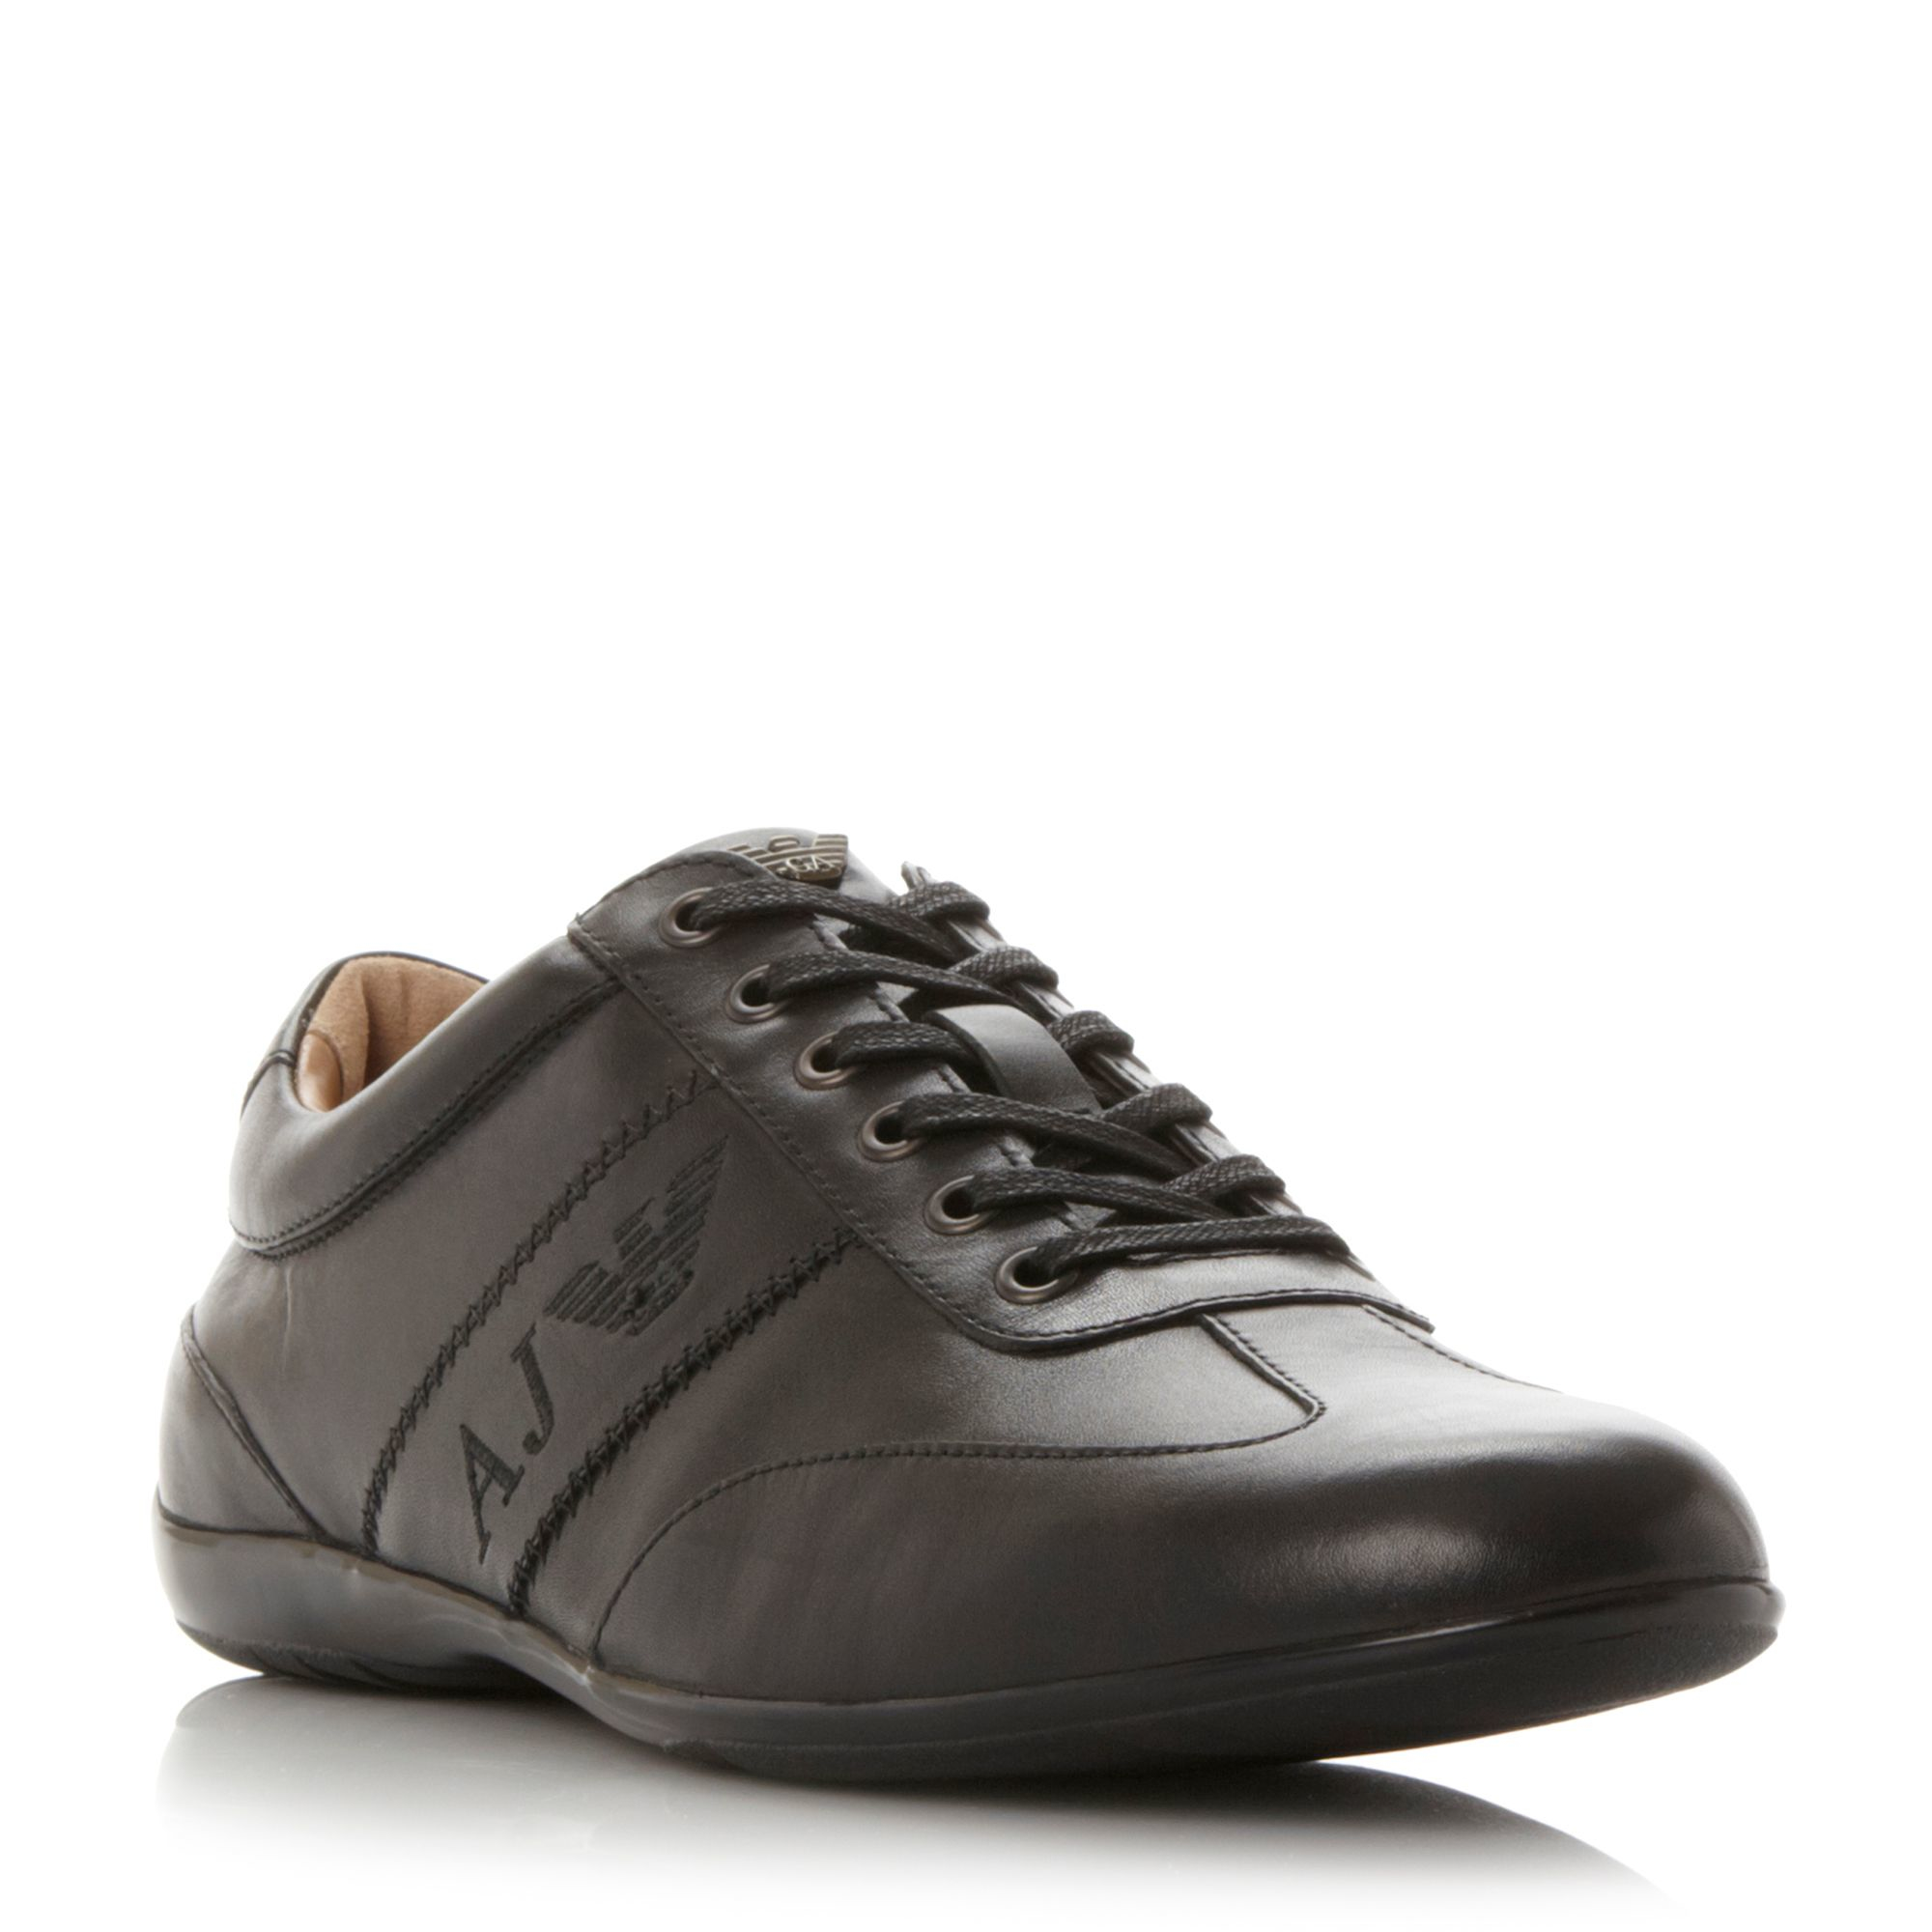 Armani jeans 0935534 Slimline Trainers in Brown for Men